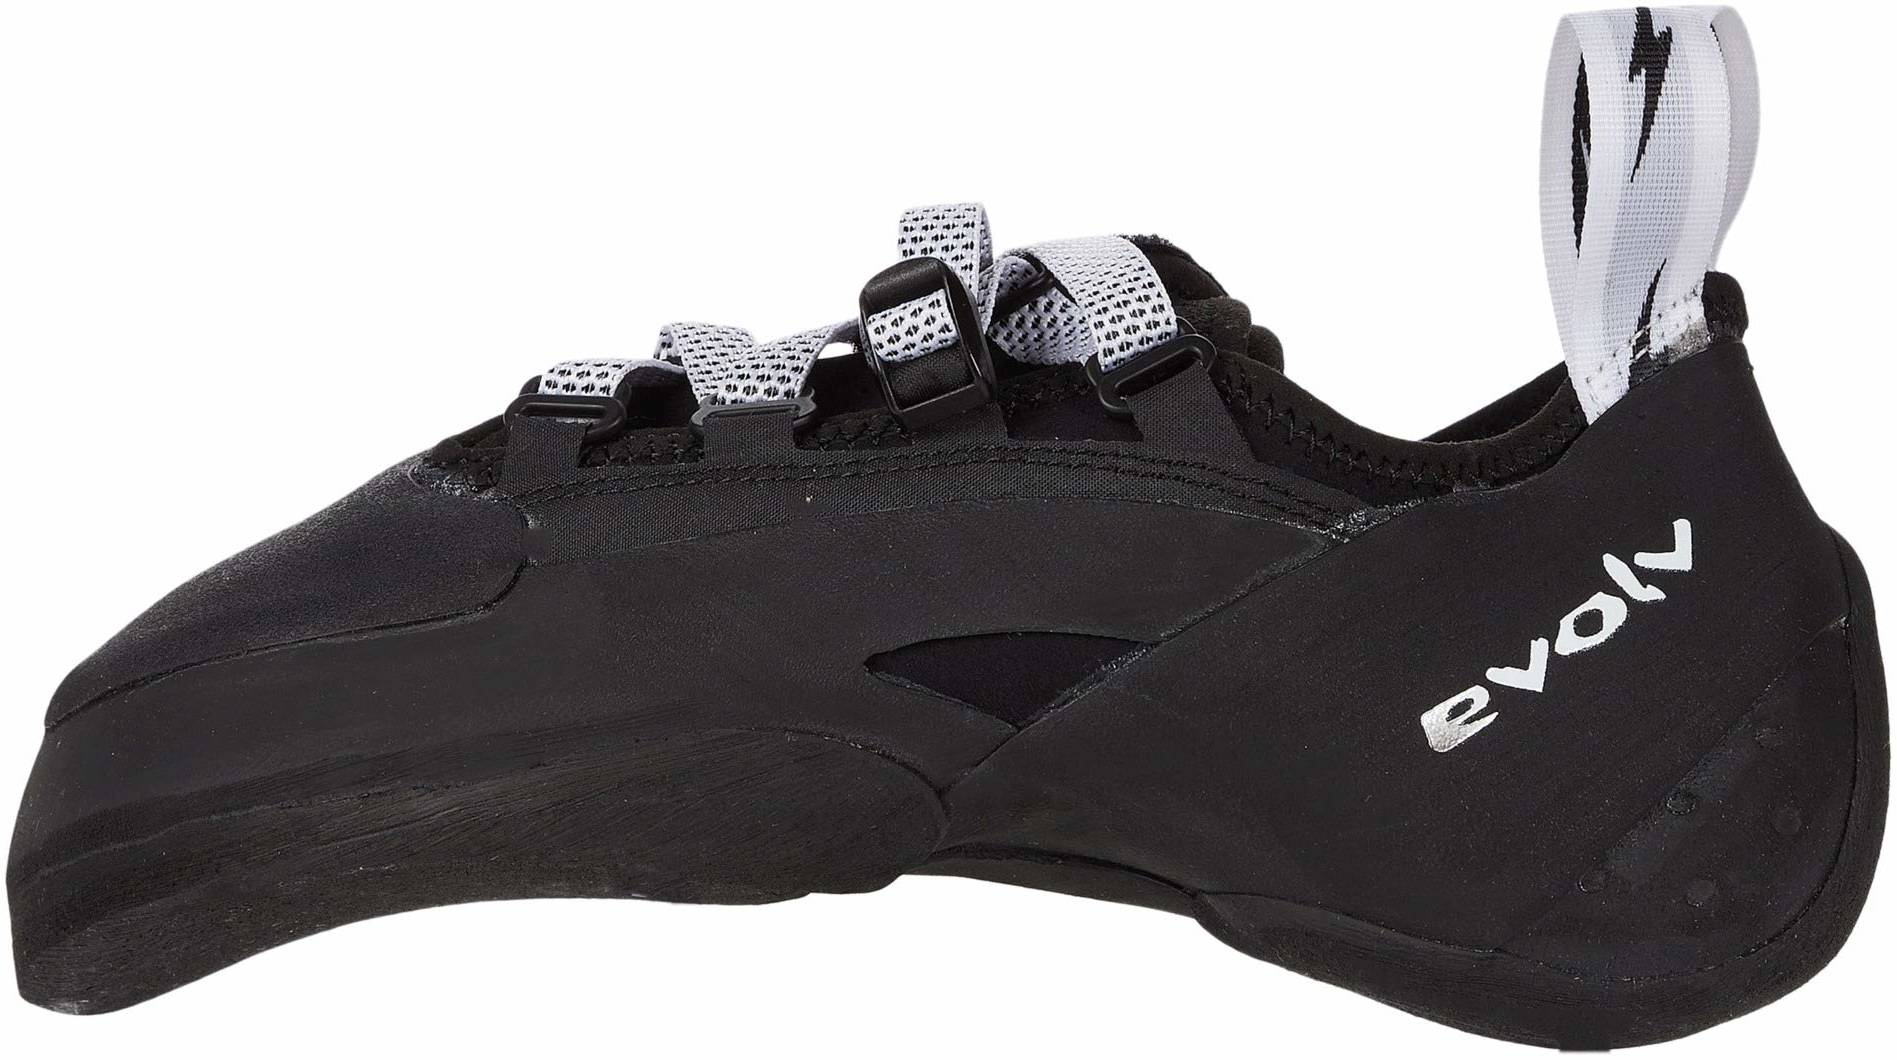 Save 42% on Aggressive Climbing Shoes